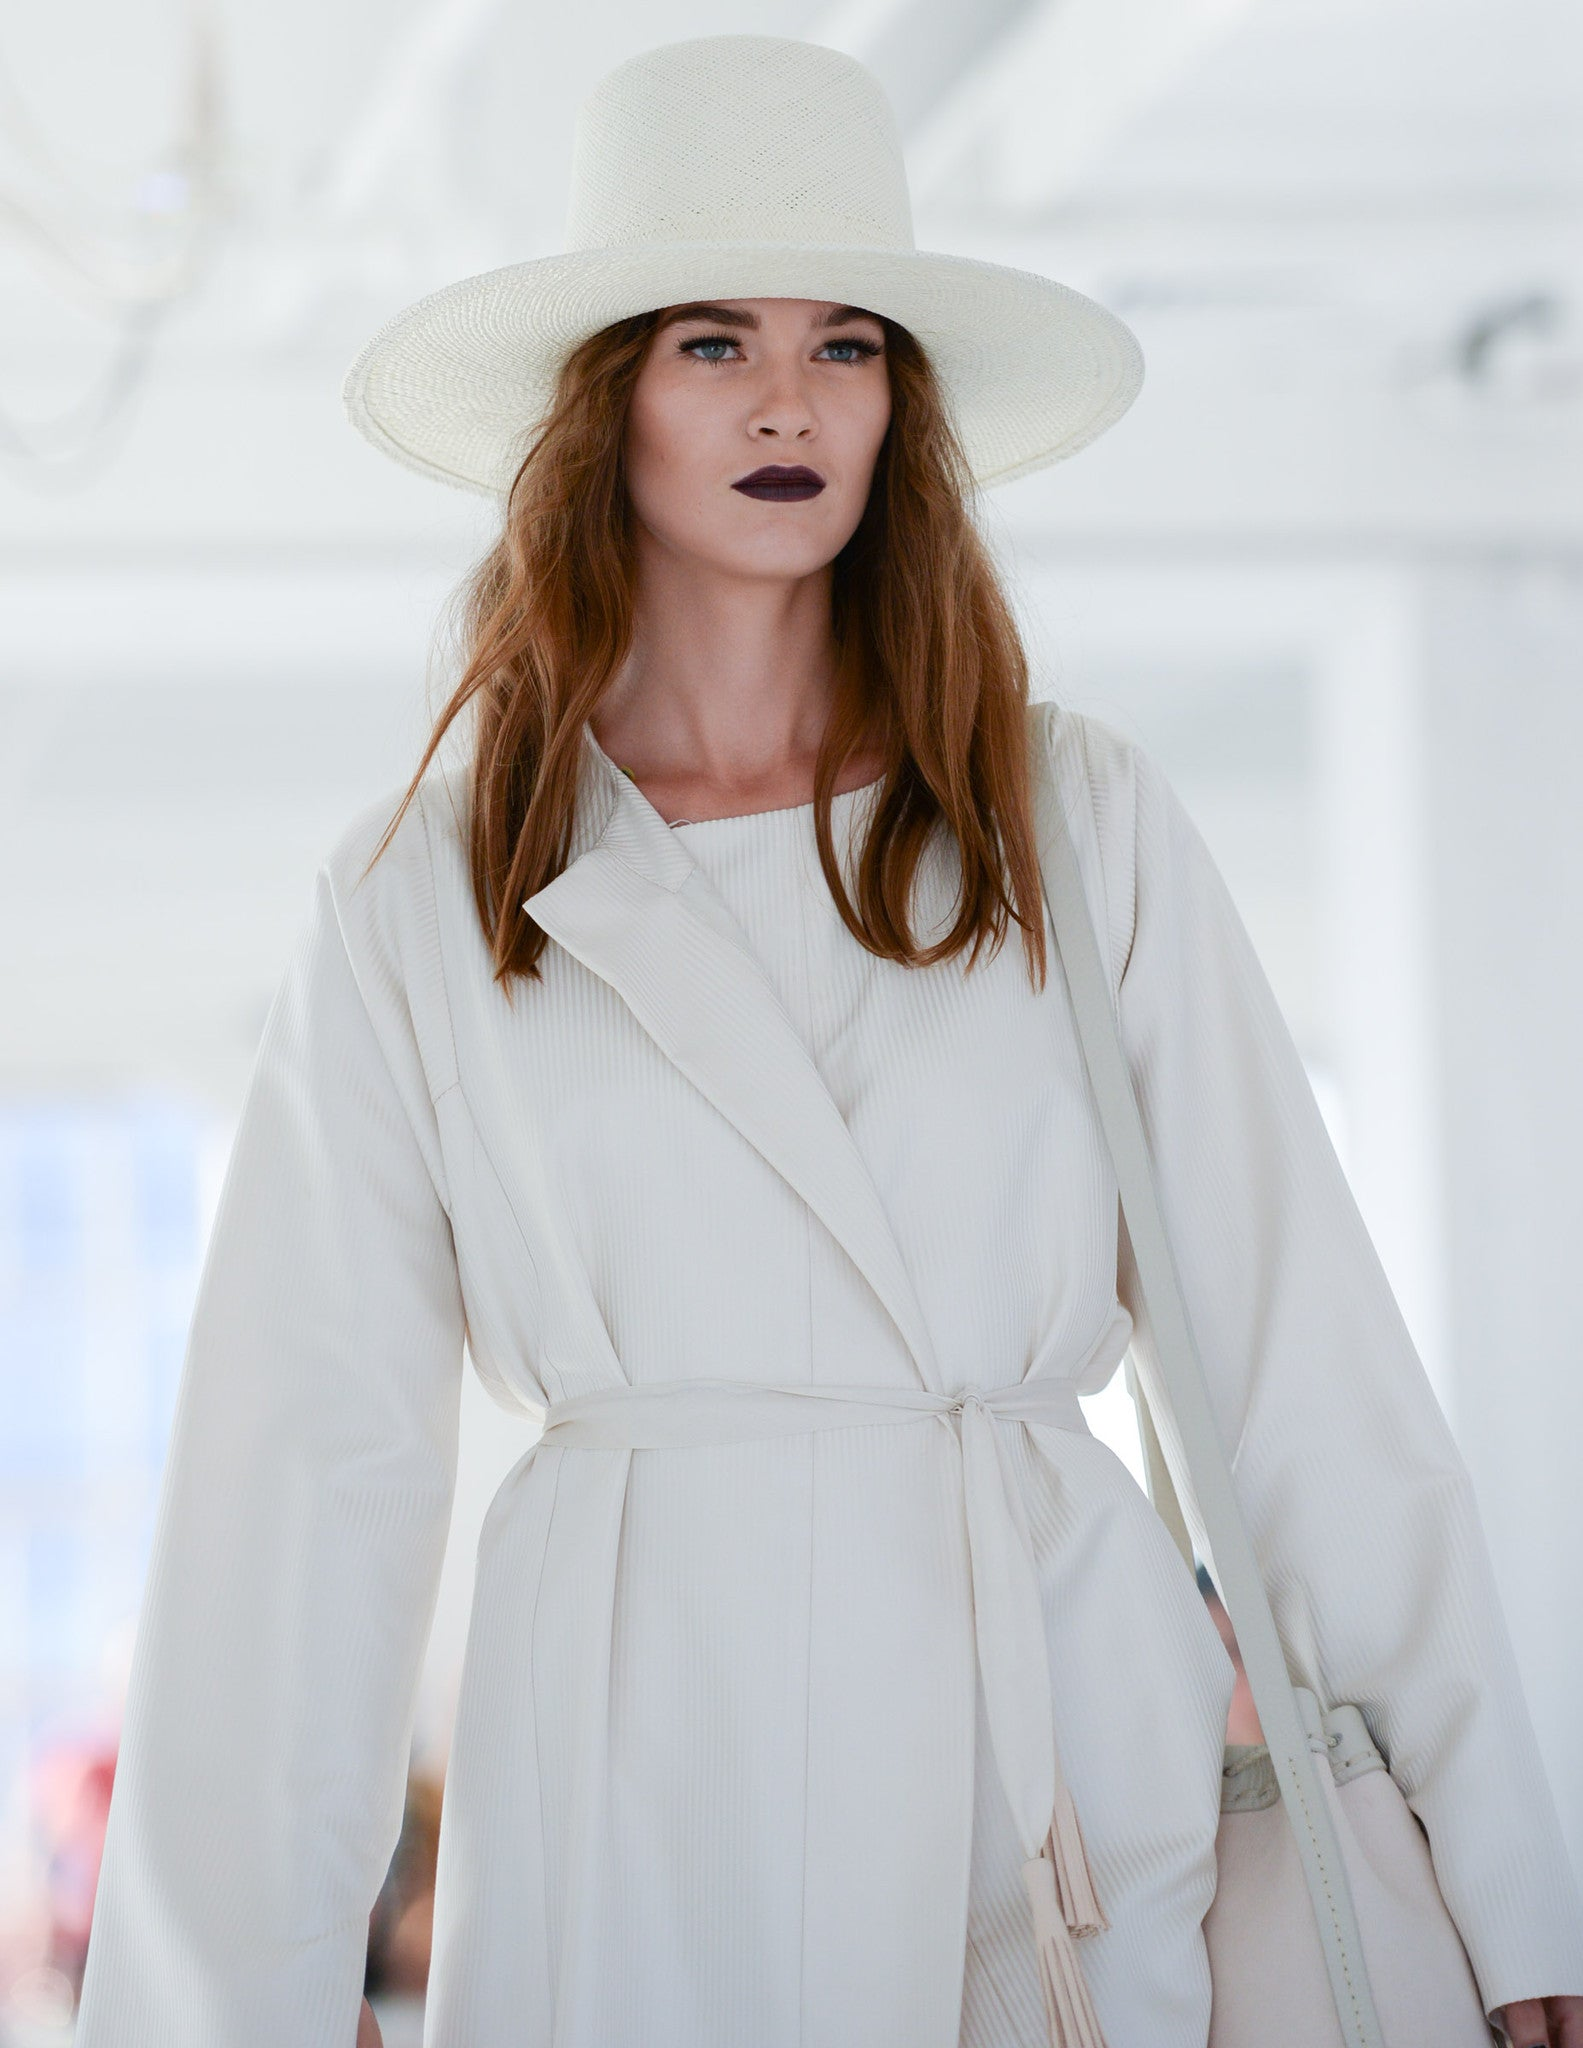 Rudi IMG Model Wendy Nichol Clothing Designer Ready to wear Fashion Runway Show SS16 Guardians of Light Sunrise Silk Cream light pink Sunrise Opera Coat white cream Straw Wide Brim Hat  Handmade in NYC